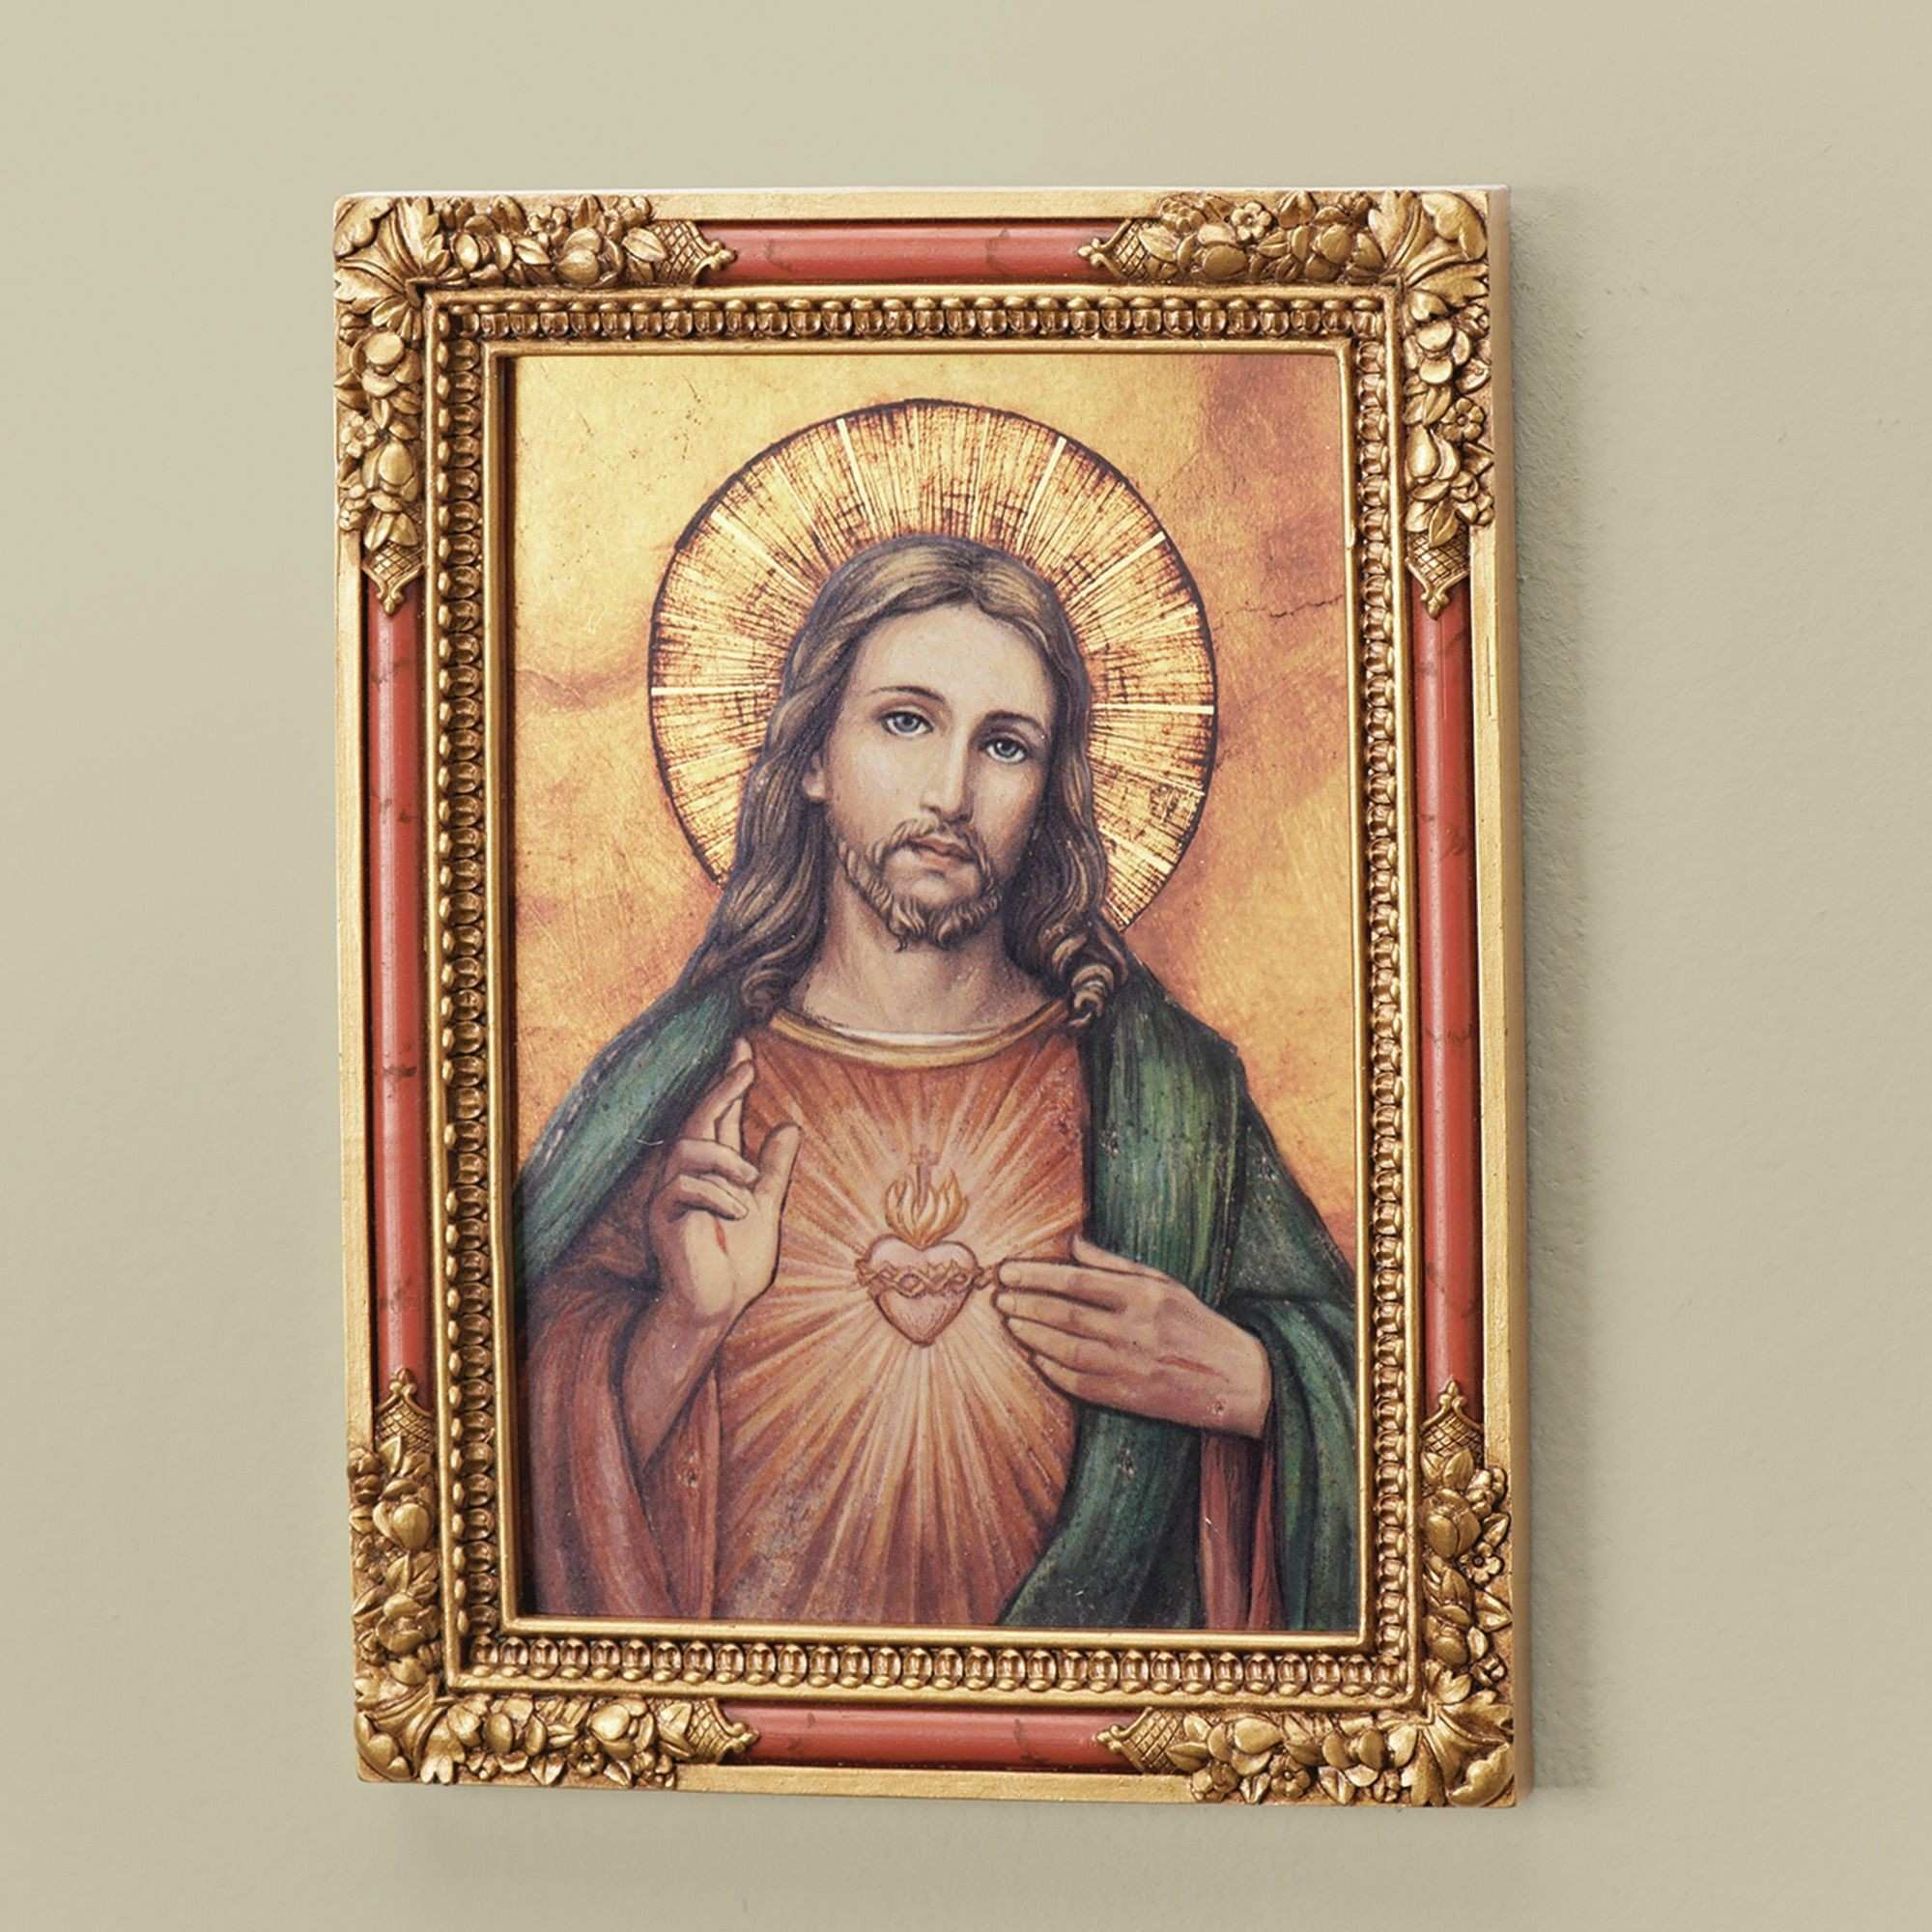 Astonishing Framed Christian Wall Art Lovely Mainstays Piece Key